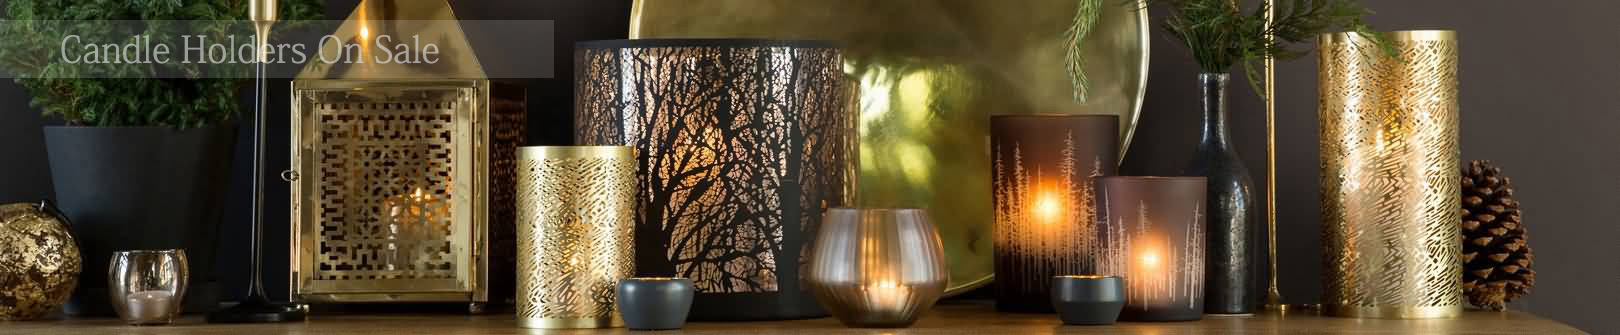 Luxury candle holders online